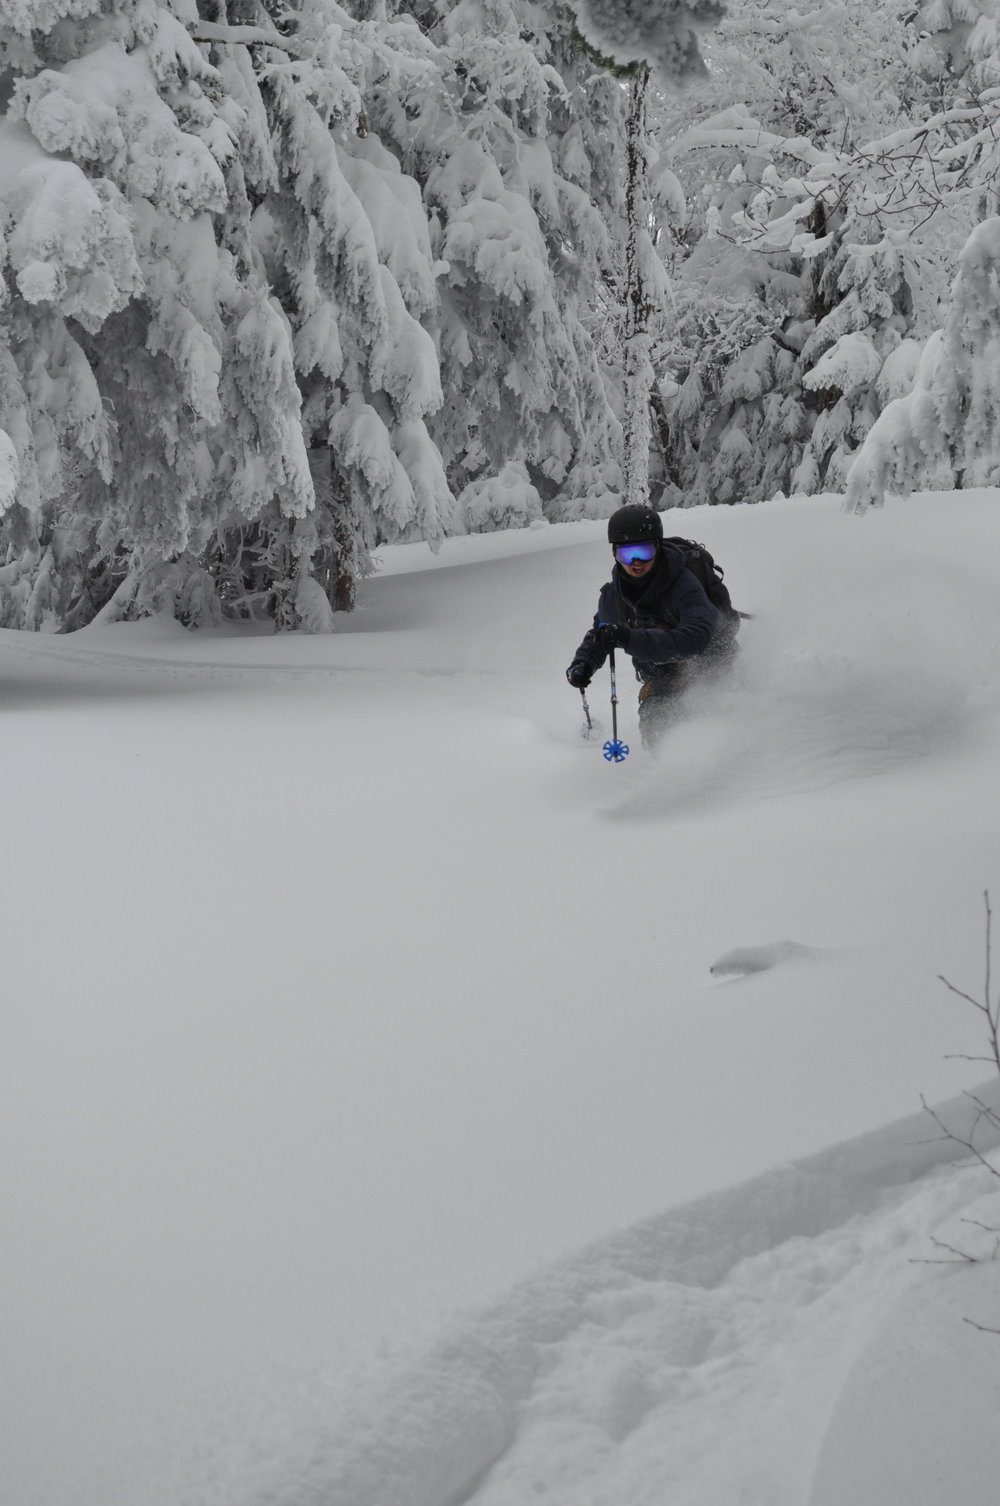 Corey Potter digging a trench on the Killington Tour